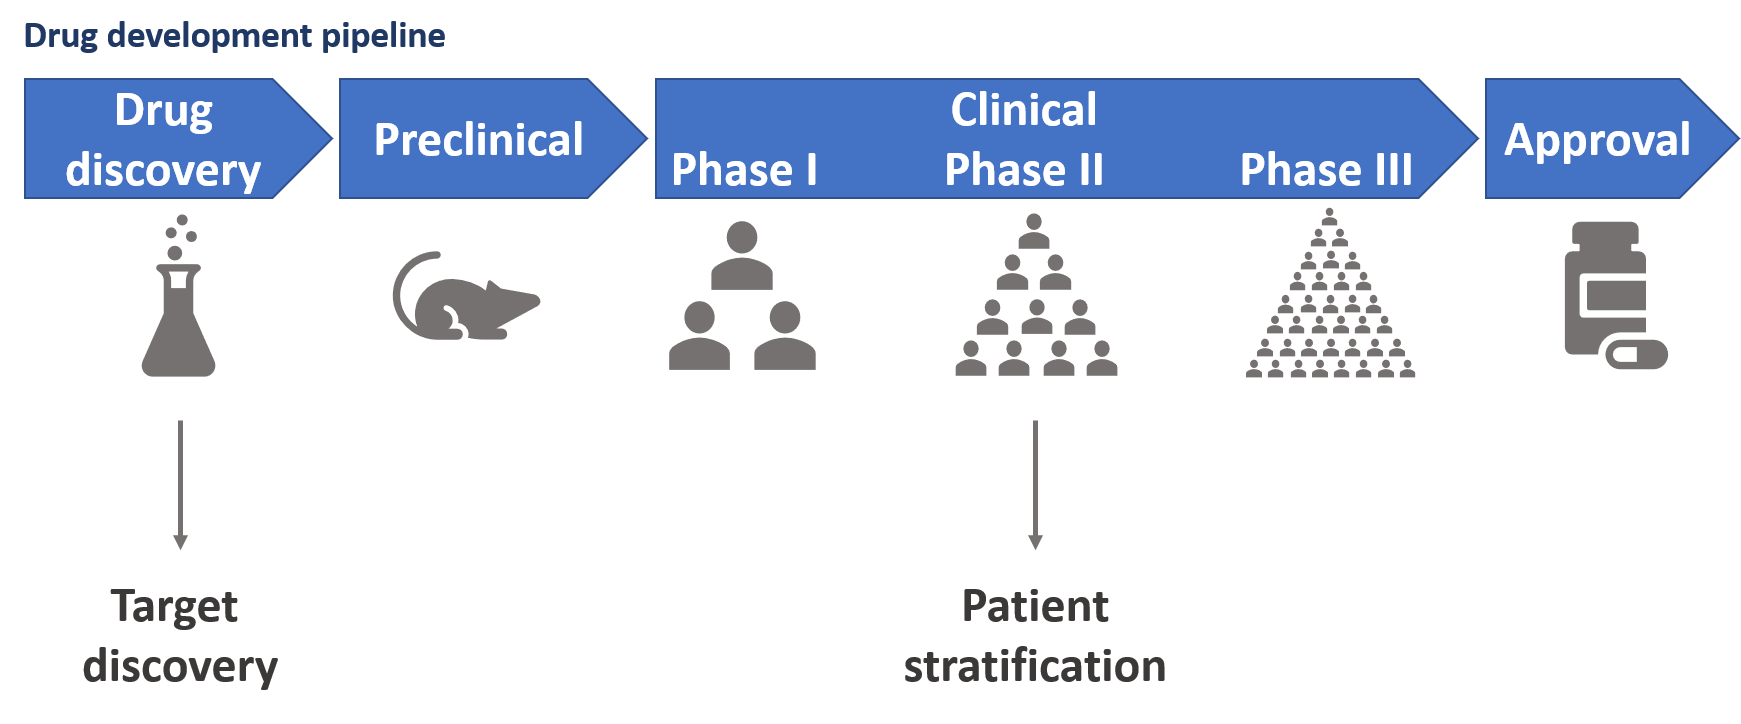 Figure 1: Simplified schematic of the drug development pipeline and two ways in which human genetics studies can impact this pipeline – target discovery and patient stratification.